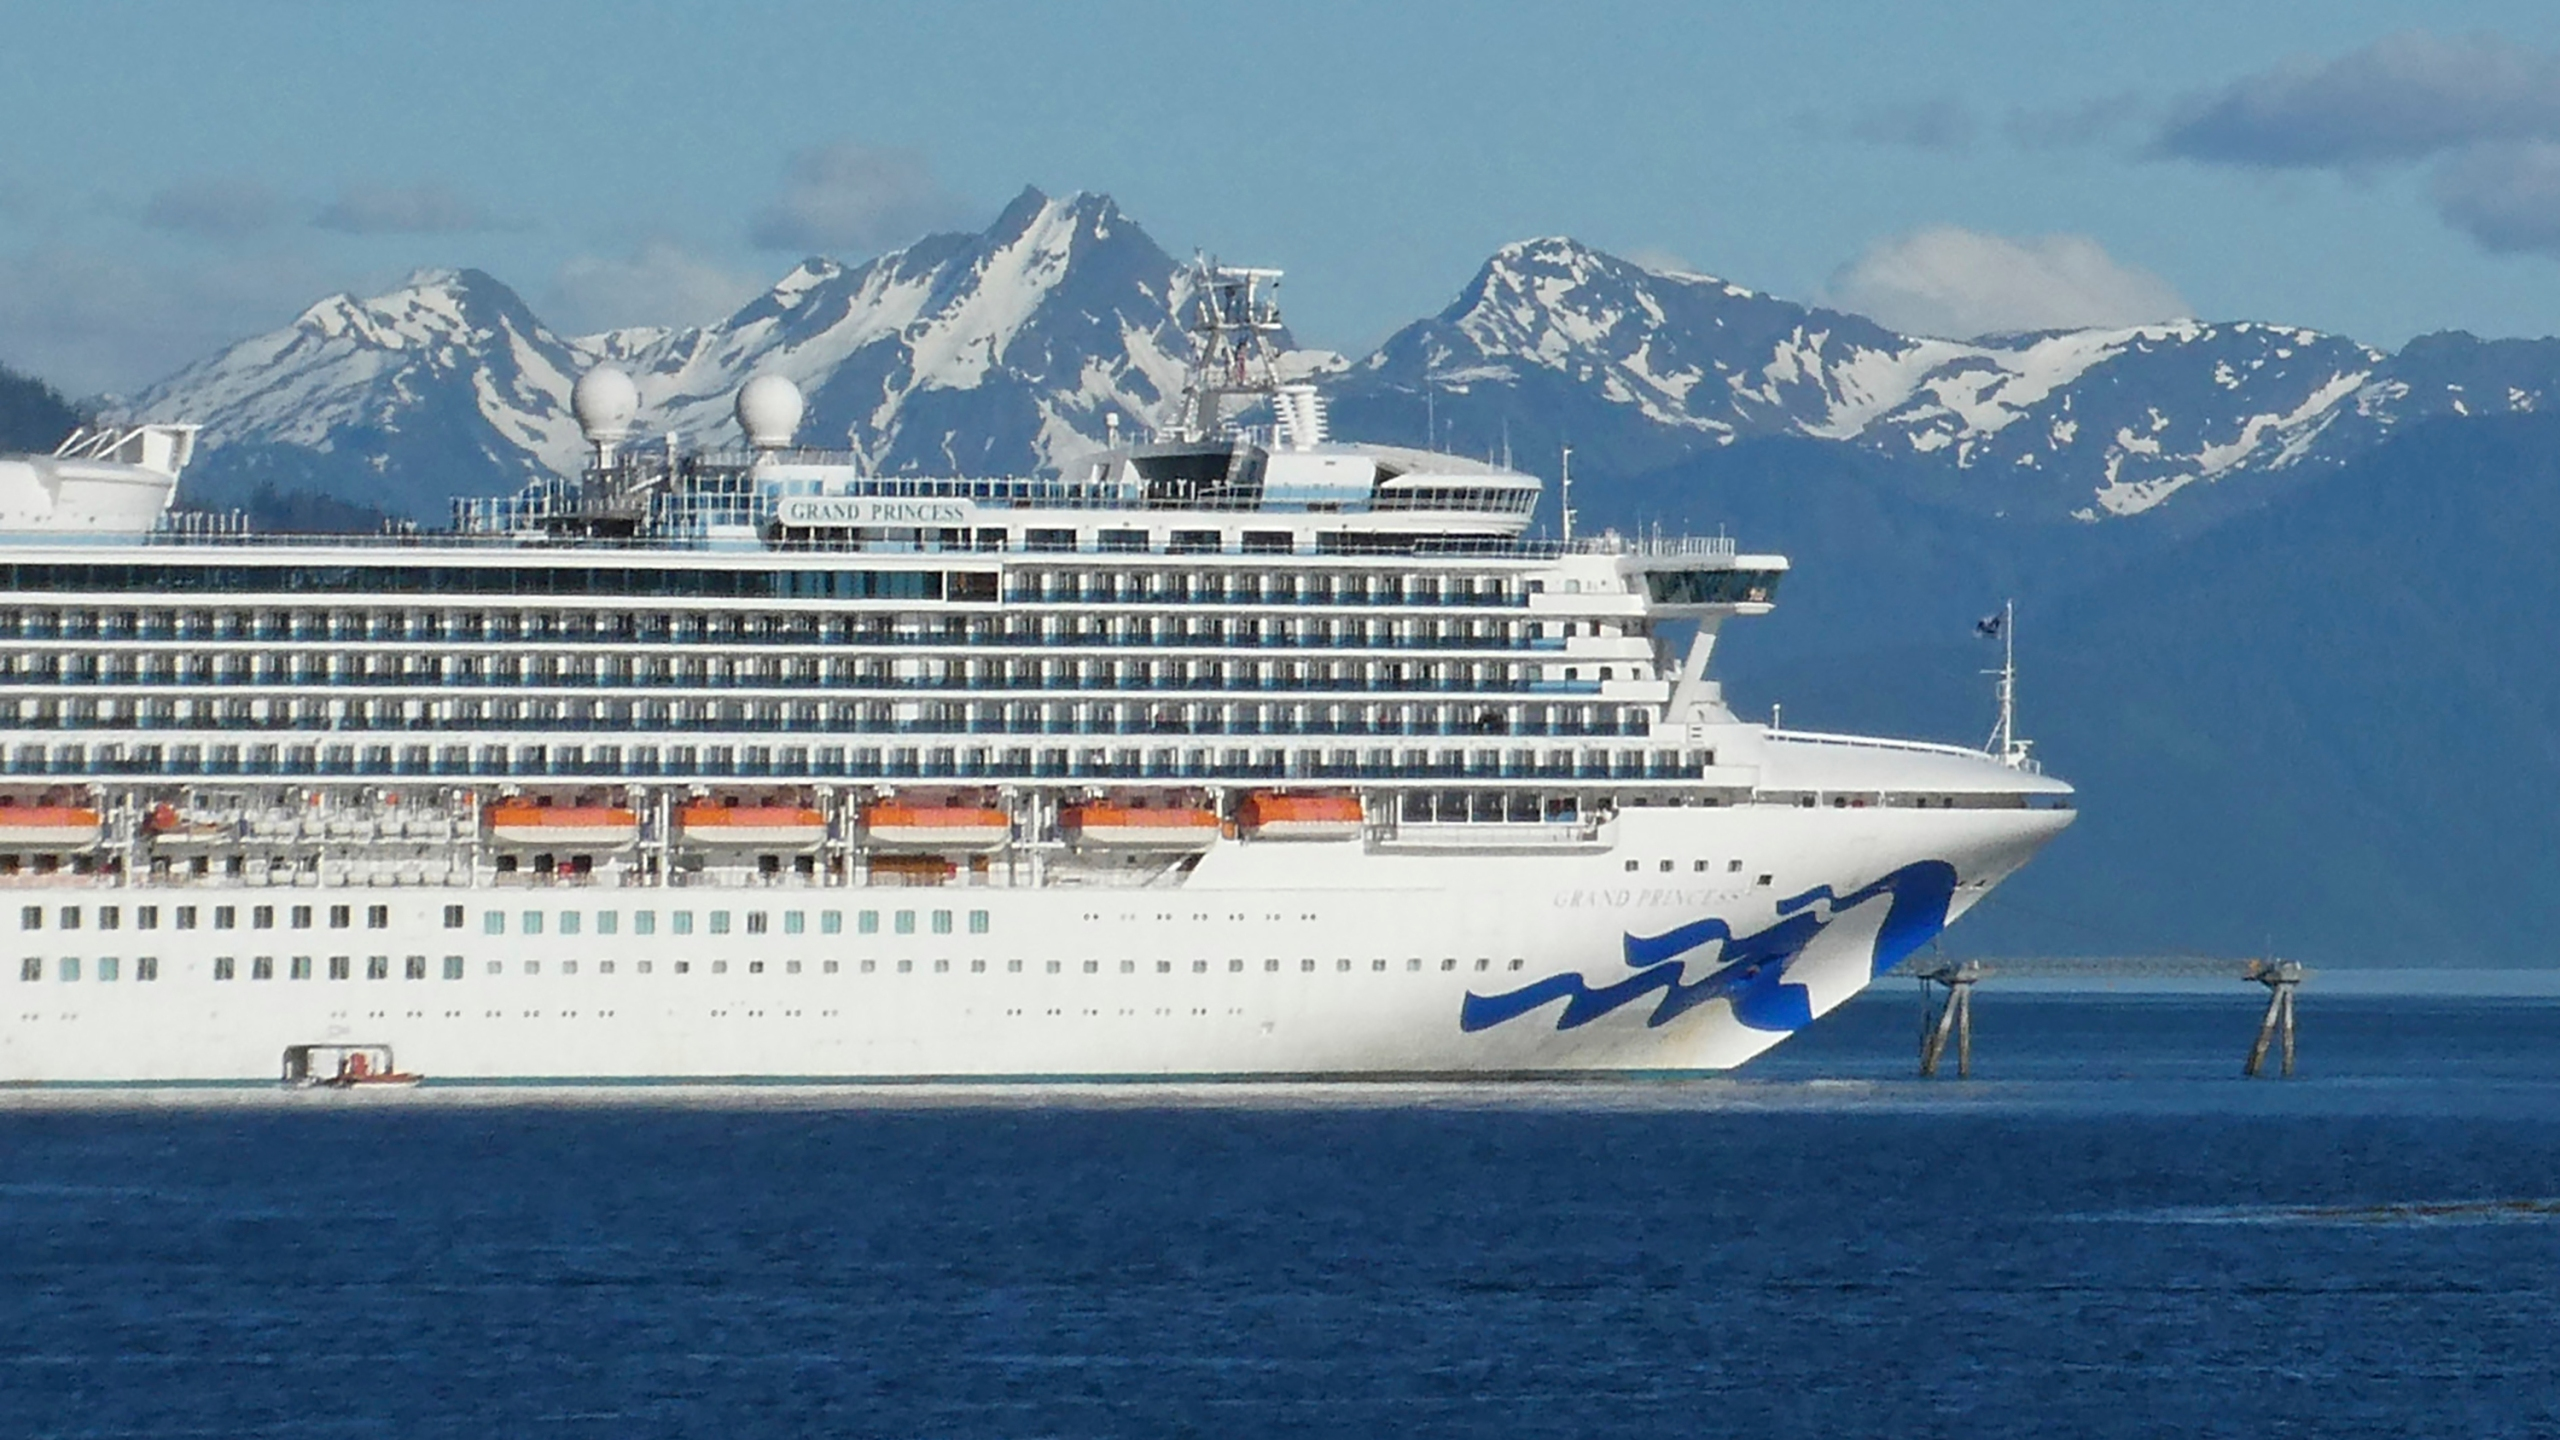 In this May 30, 2018, file photo, is the Grand Princess cruise ship in Gastineau Channel in Juneau, Alaska. The Canadian government has extended a ban on cruise ships through February 2022, which is expected to block trips from visiting Alaska this year. Transport Canada announced the extension of the ban put in place because of the COVID-19 pandemic. (AP Photo/Becky Bohrer, File)